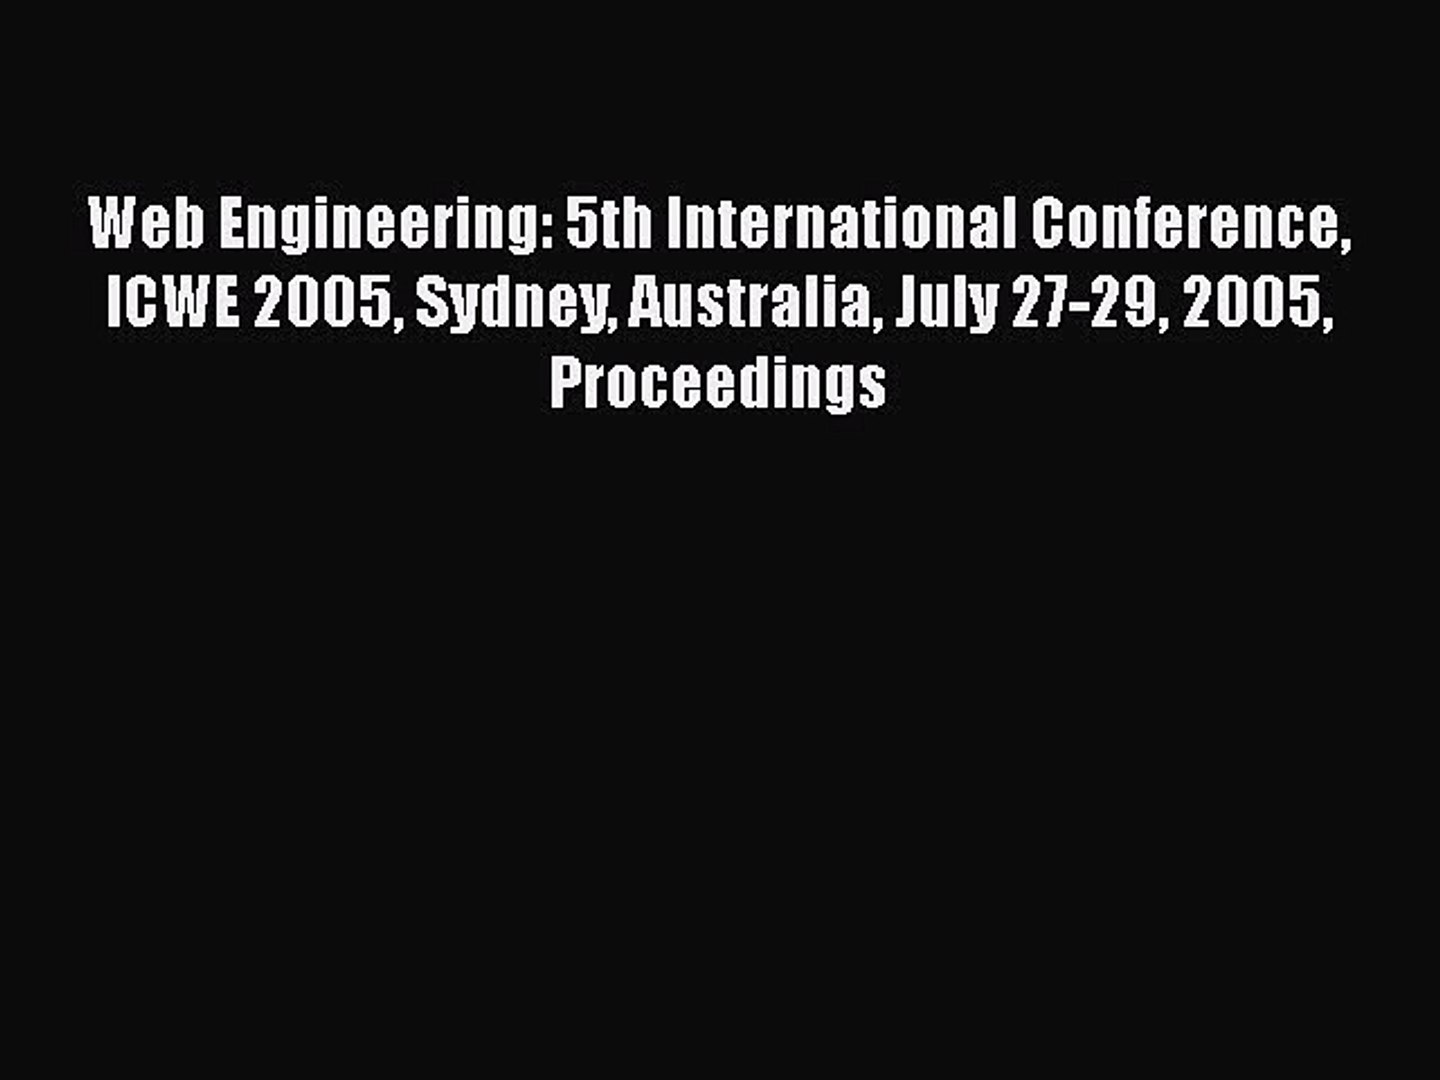 Read Web Engineering: 5th International Conference ICWE 2005 Sydney Australia July 27-29 2005